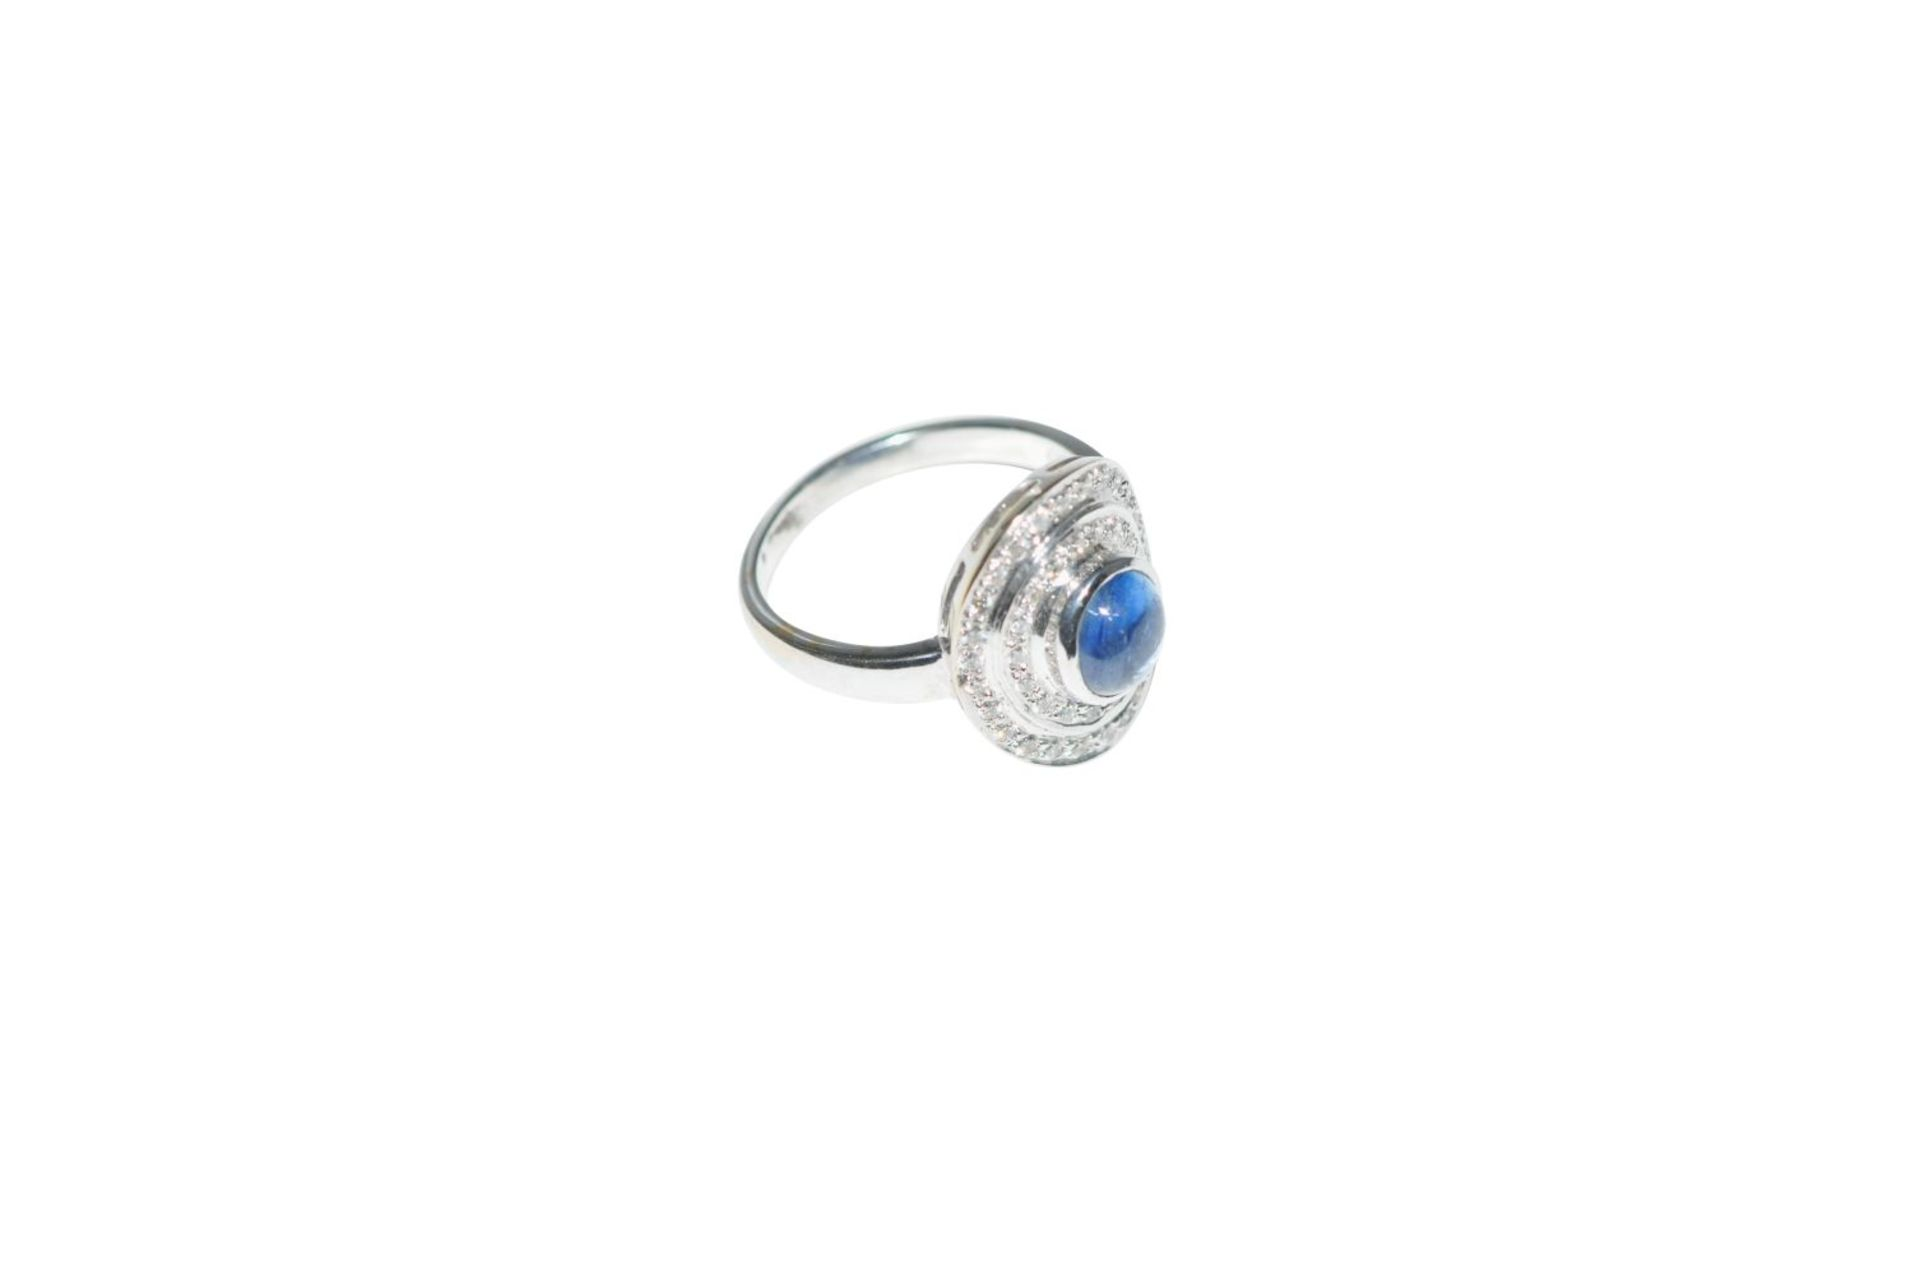 Los 99 - Brilliant ring with sapphire18Kt white gold ring with diamonds total carat weight approx. 0.8ct